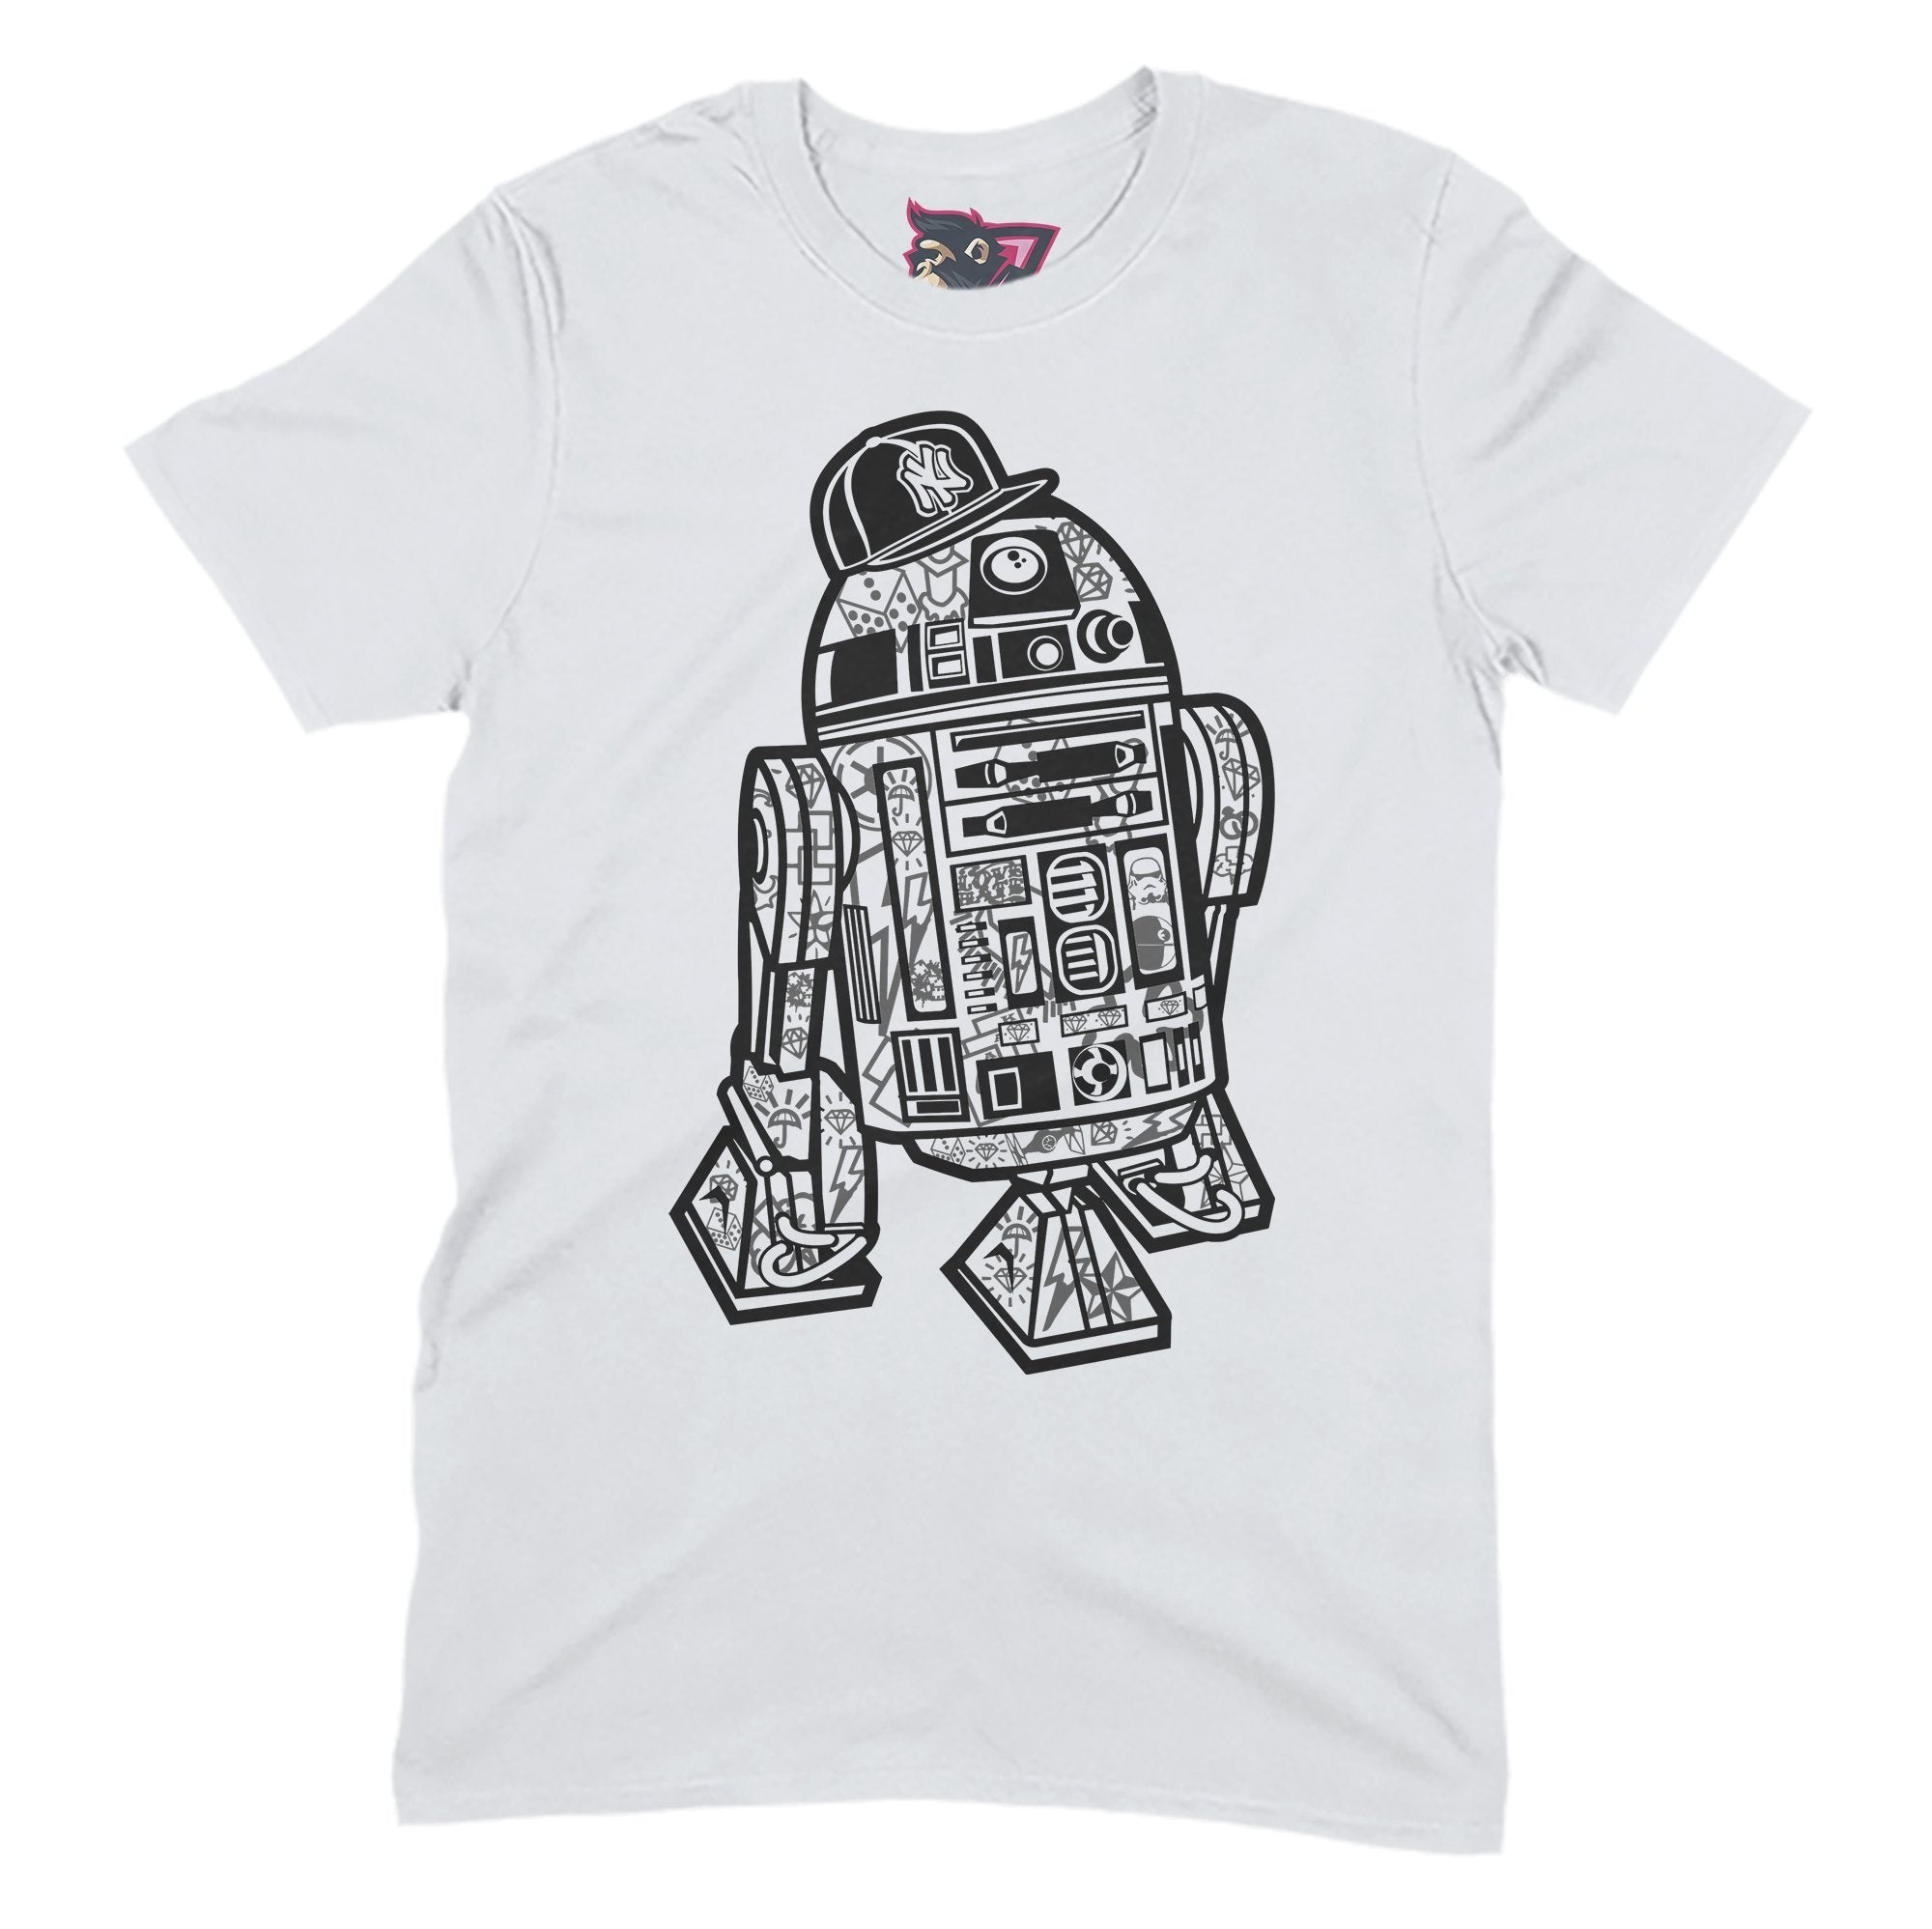 R2D2 Street Primate Novelty Unisex T-Shirt Adults: S